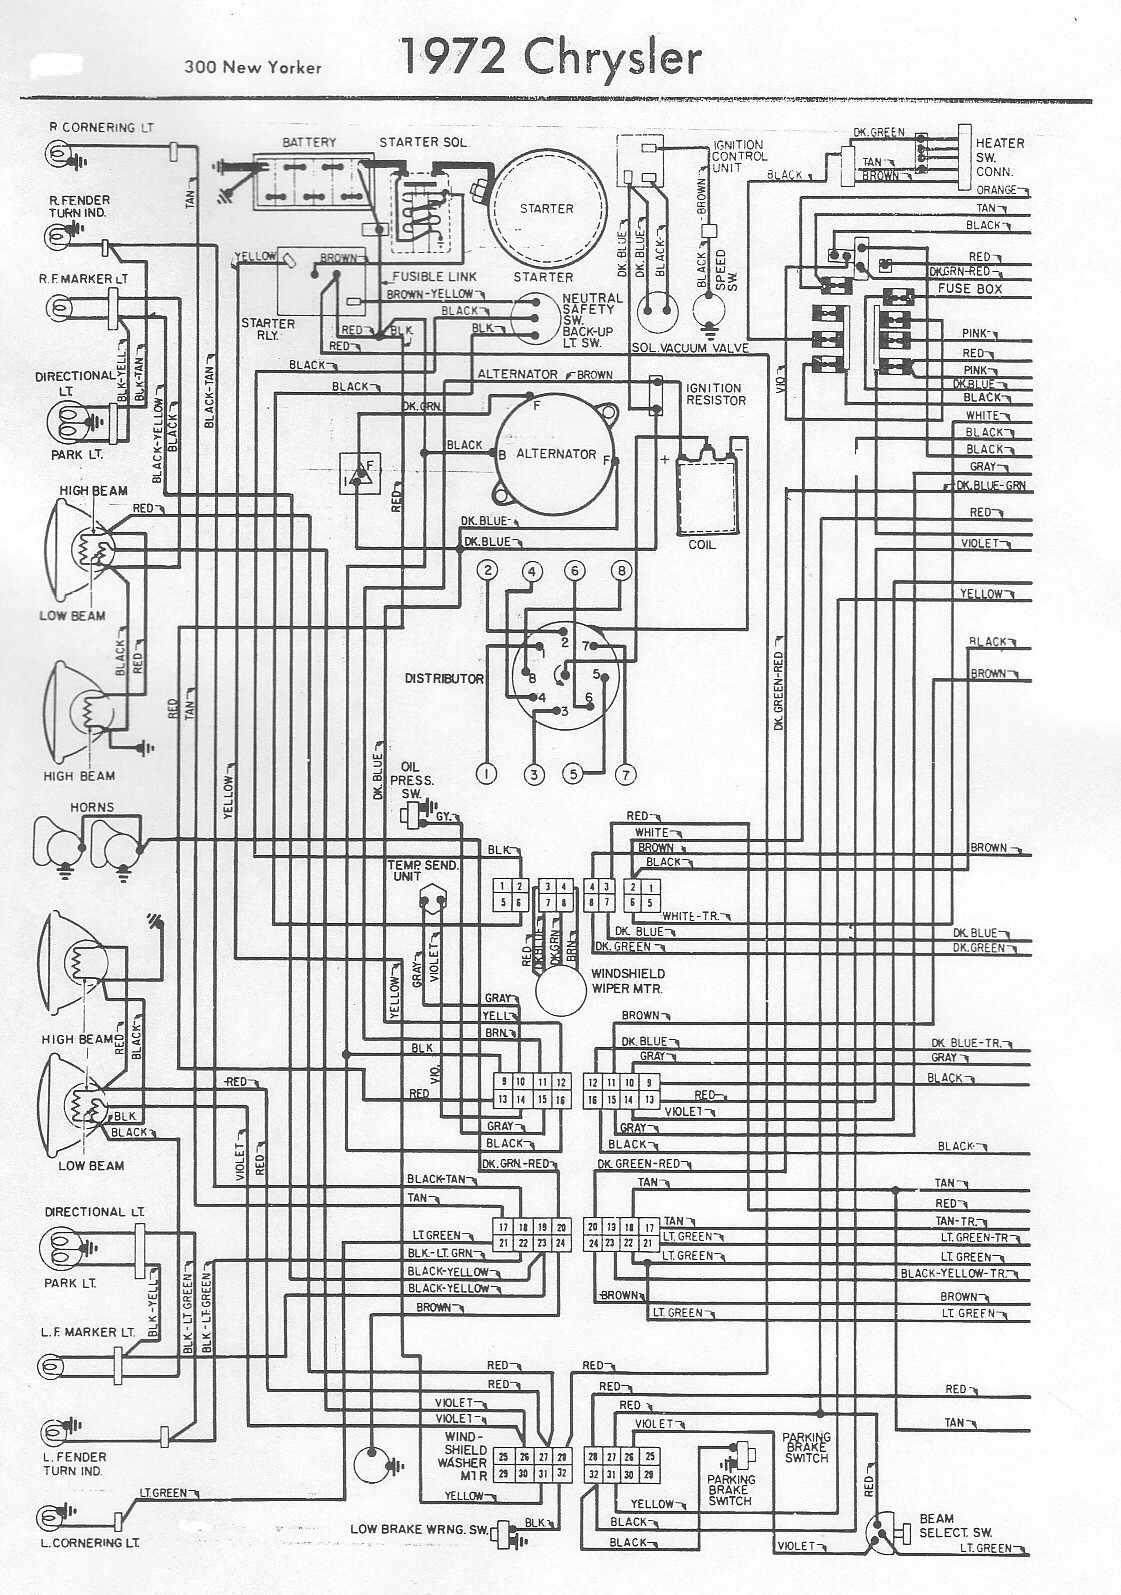 1948 Cadillac Wiring Harness Library 1951 Chevy 1956 Diagram Schematic Diagrams 93 Suburban